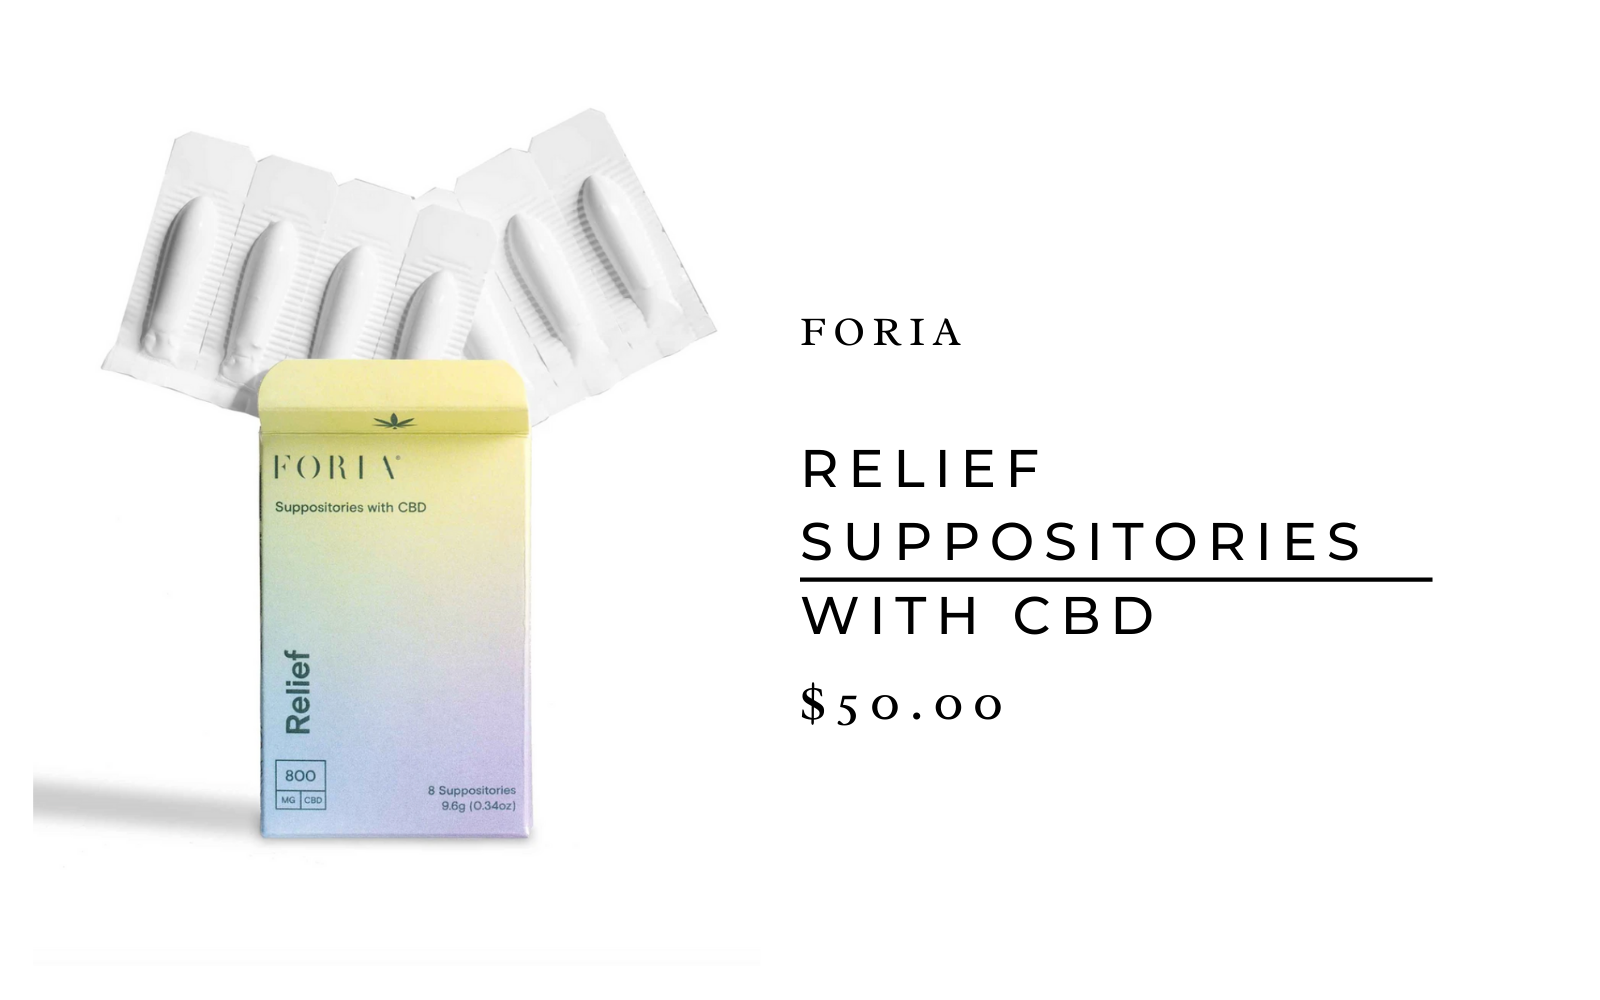 Foria suppositories with CBD